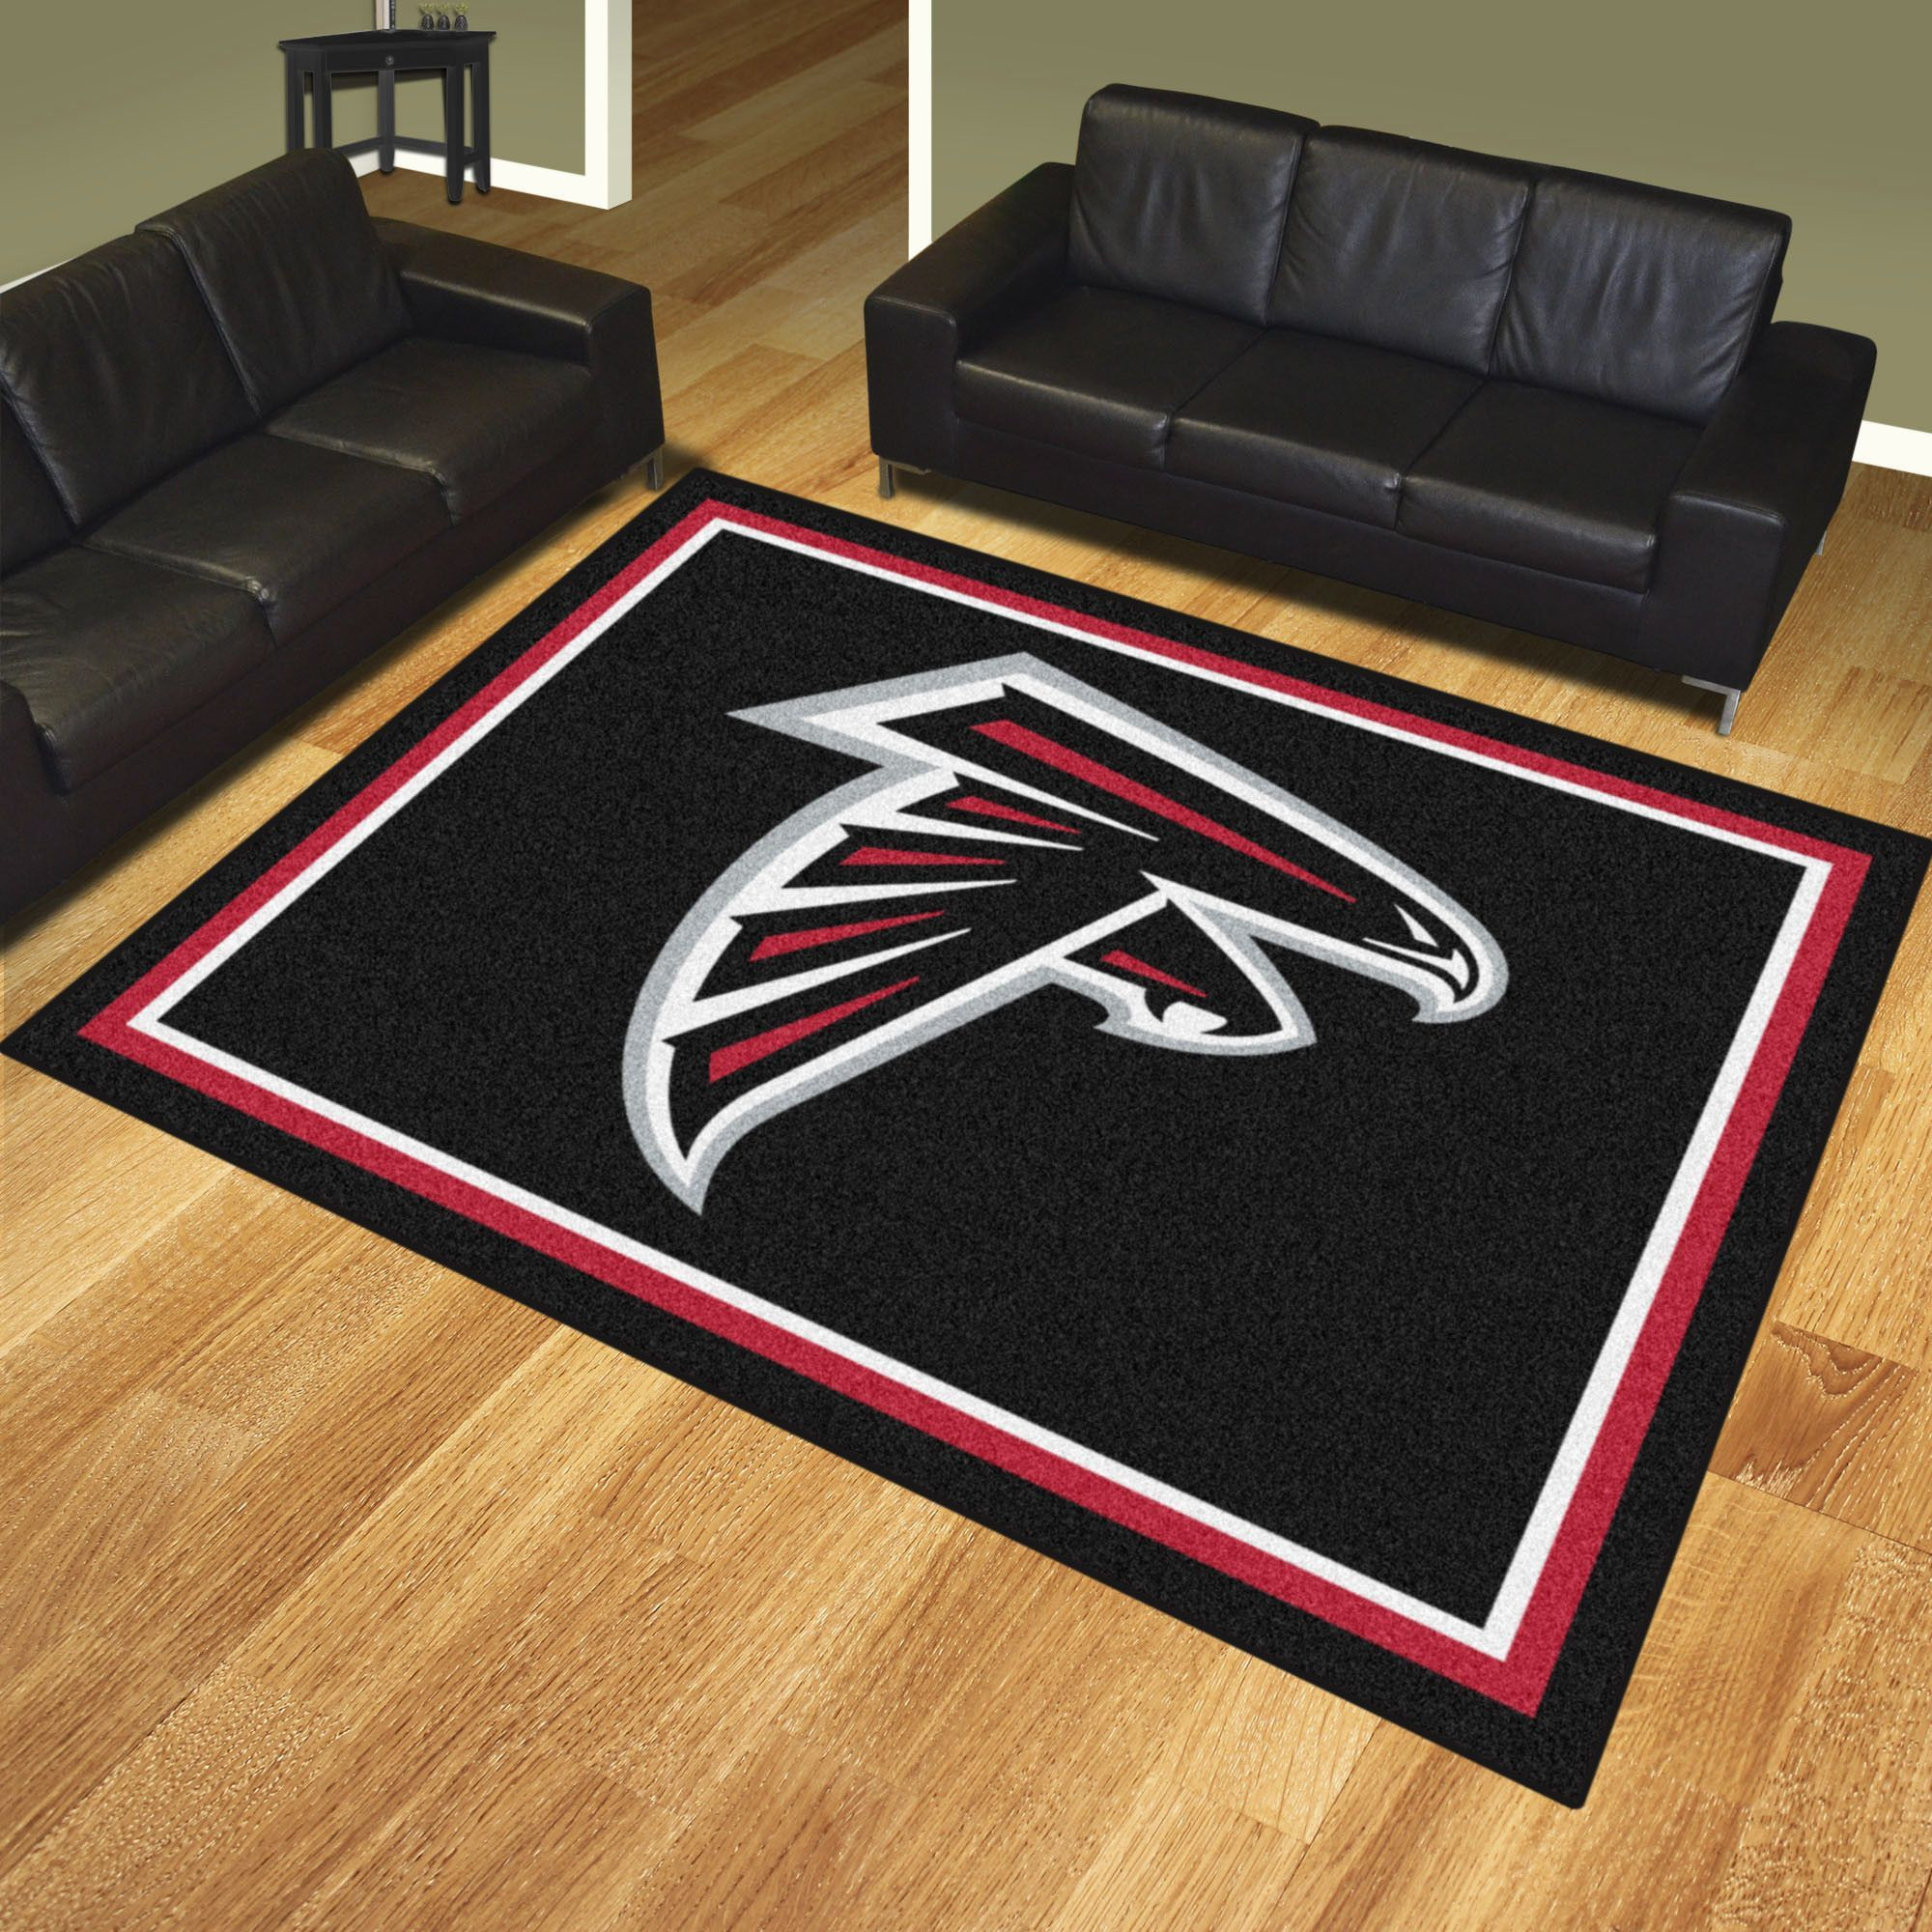 Nfl Atlanta Falcons 8x10 Rug Show Your Team Pride And Add Style To